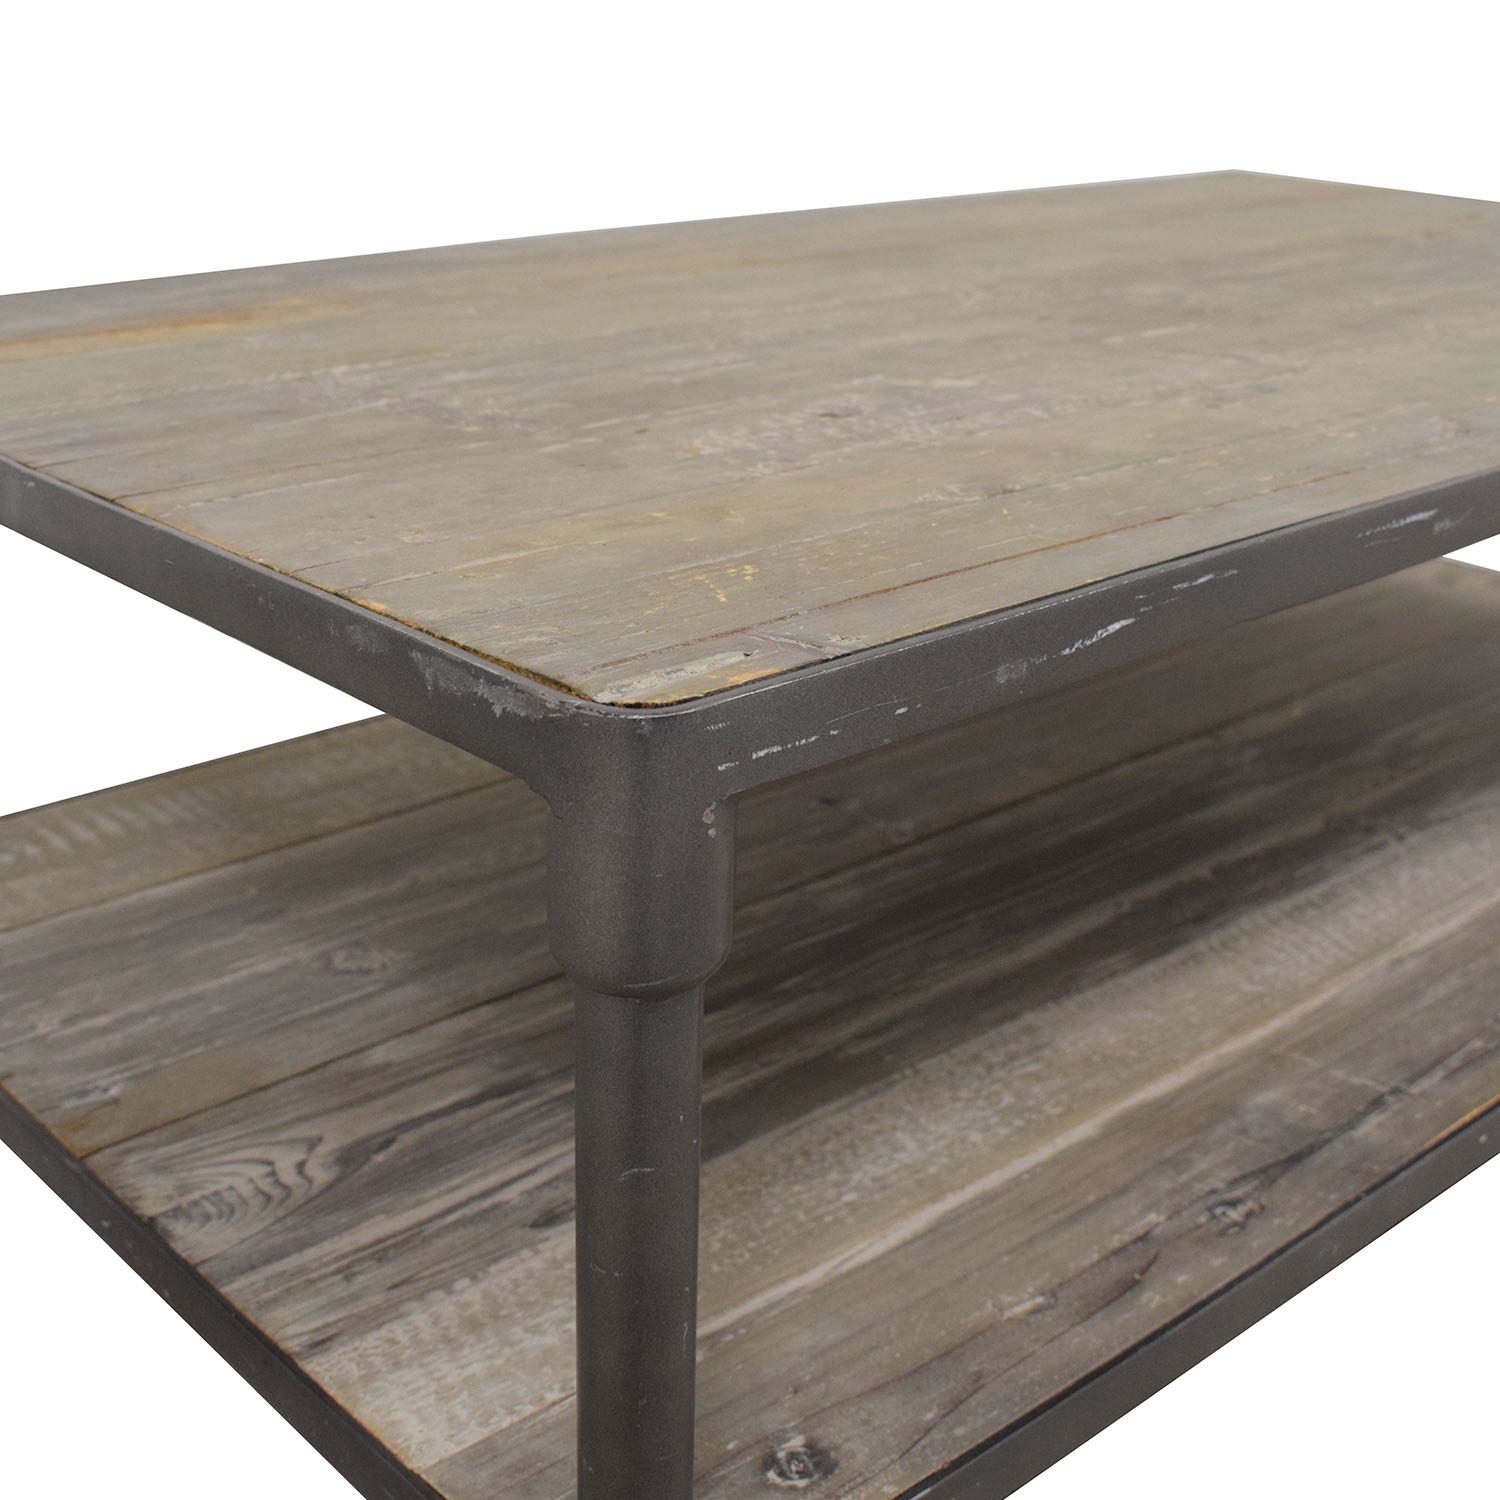 ABC Carpet & Home ABC Carpet & Home Industrial Rolling Two Tier Coffee Table for sale